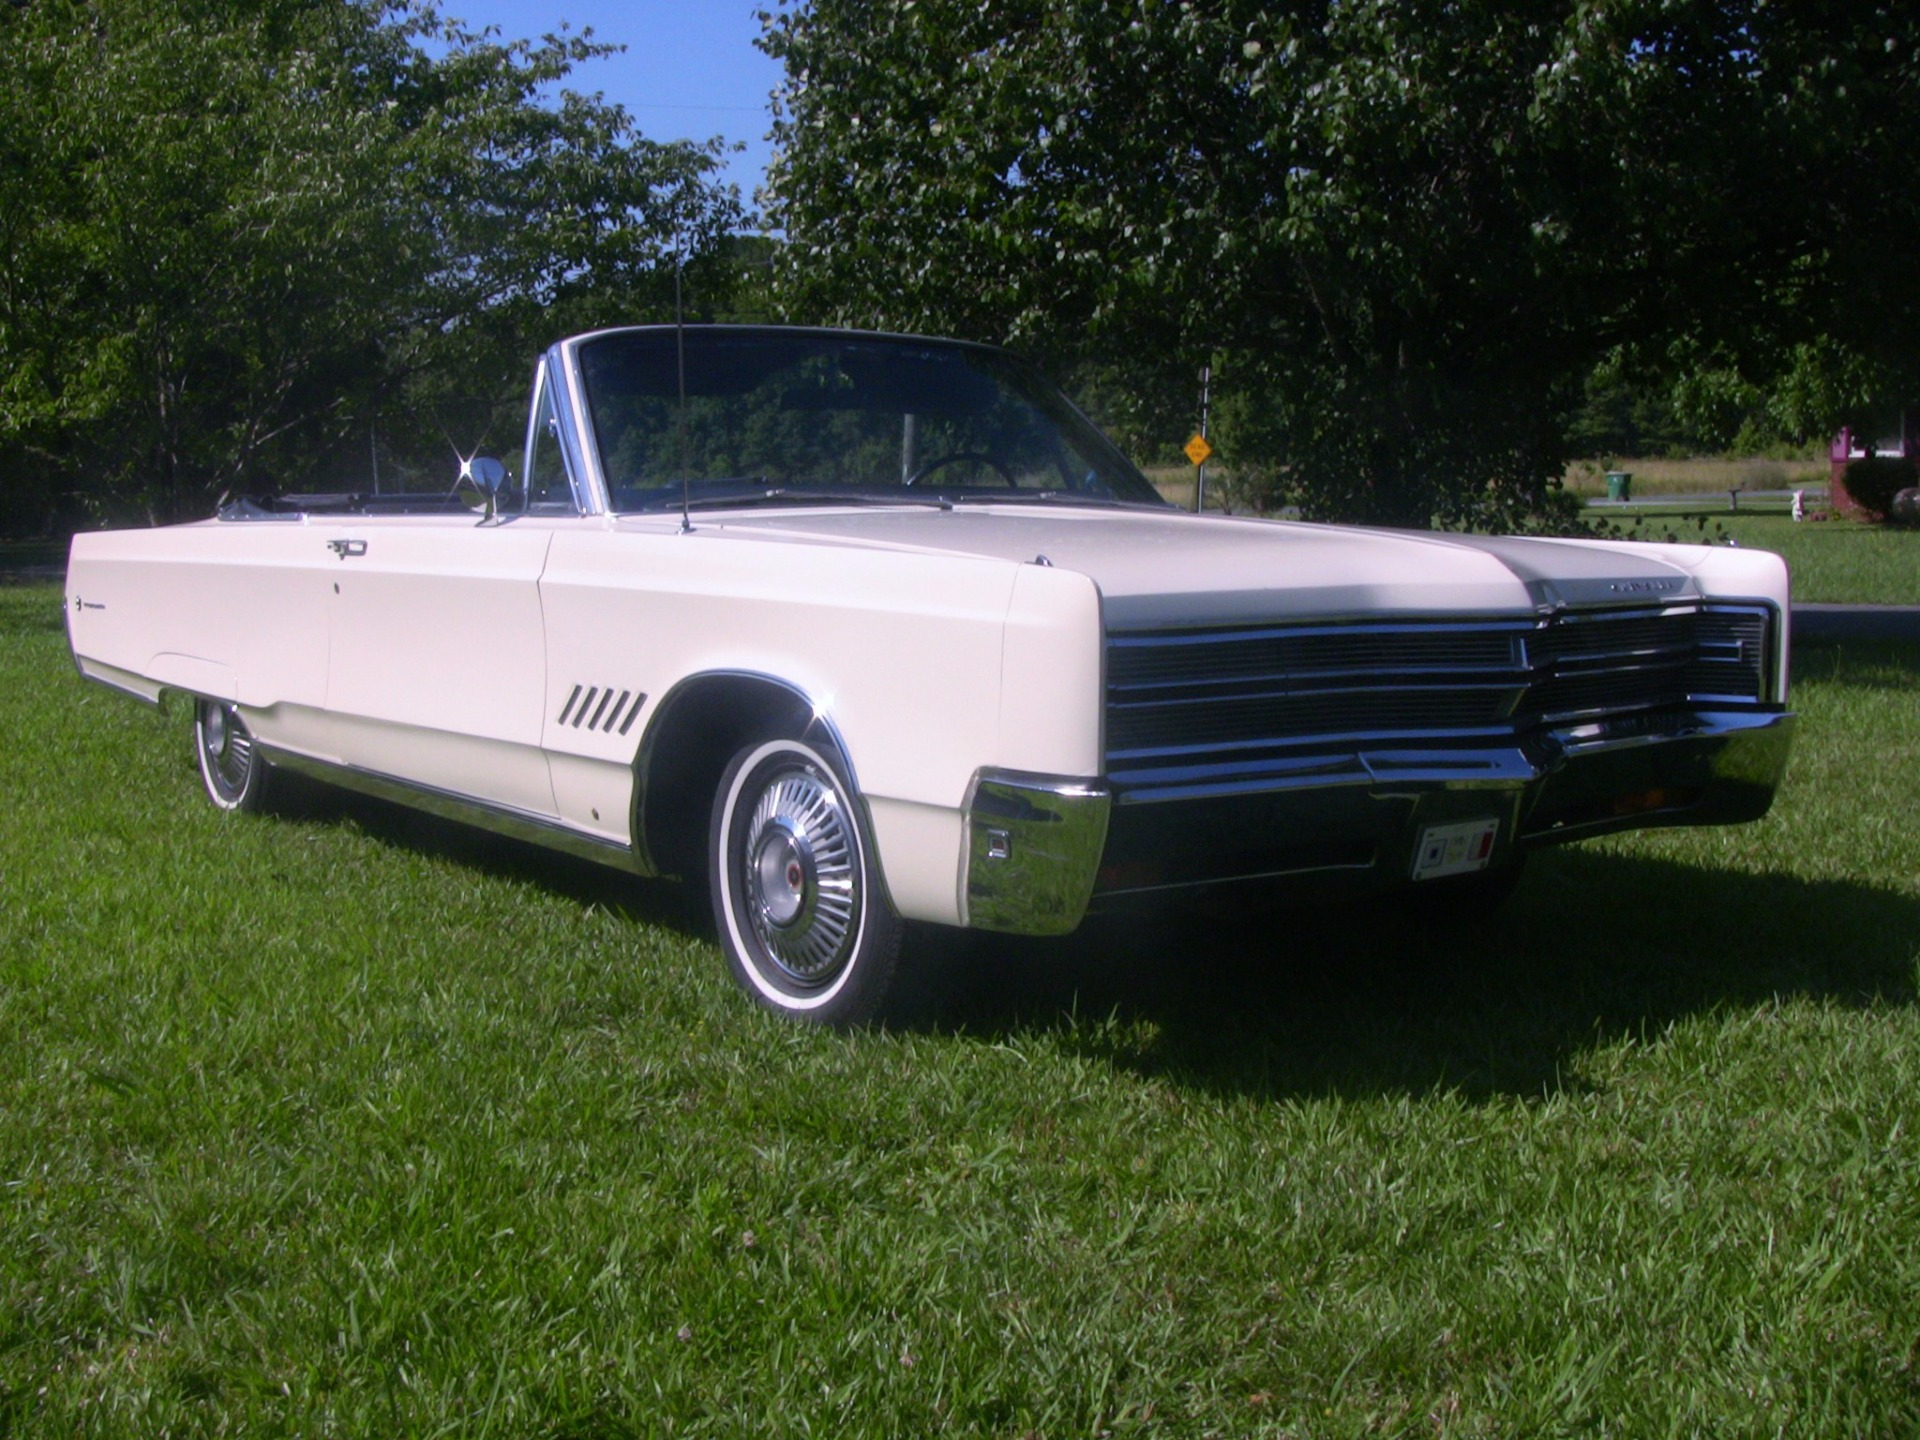 1968 chrysler 300 convertible stock a101 for sale near cornelius nc nc chrysler dealer. Black Bedroom Furniture Sets. Home Design Ideas